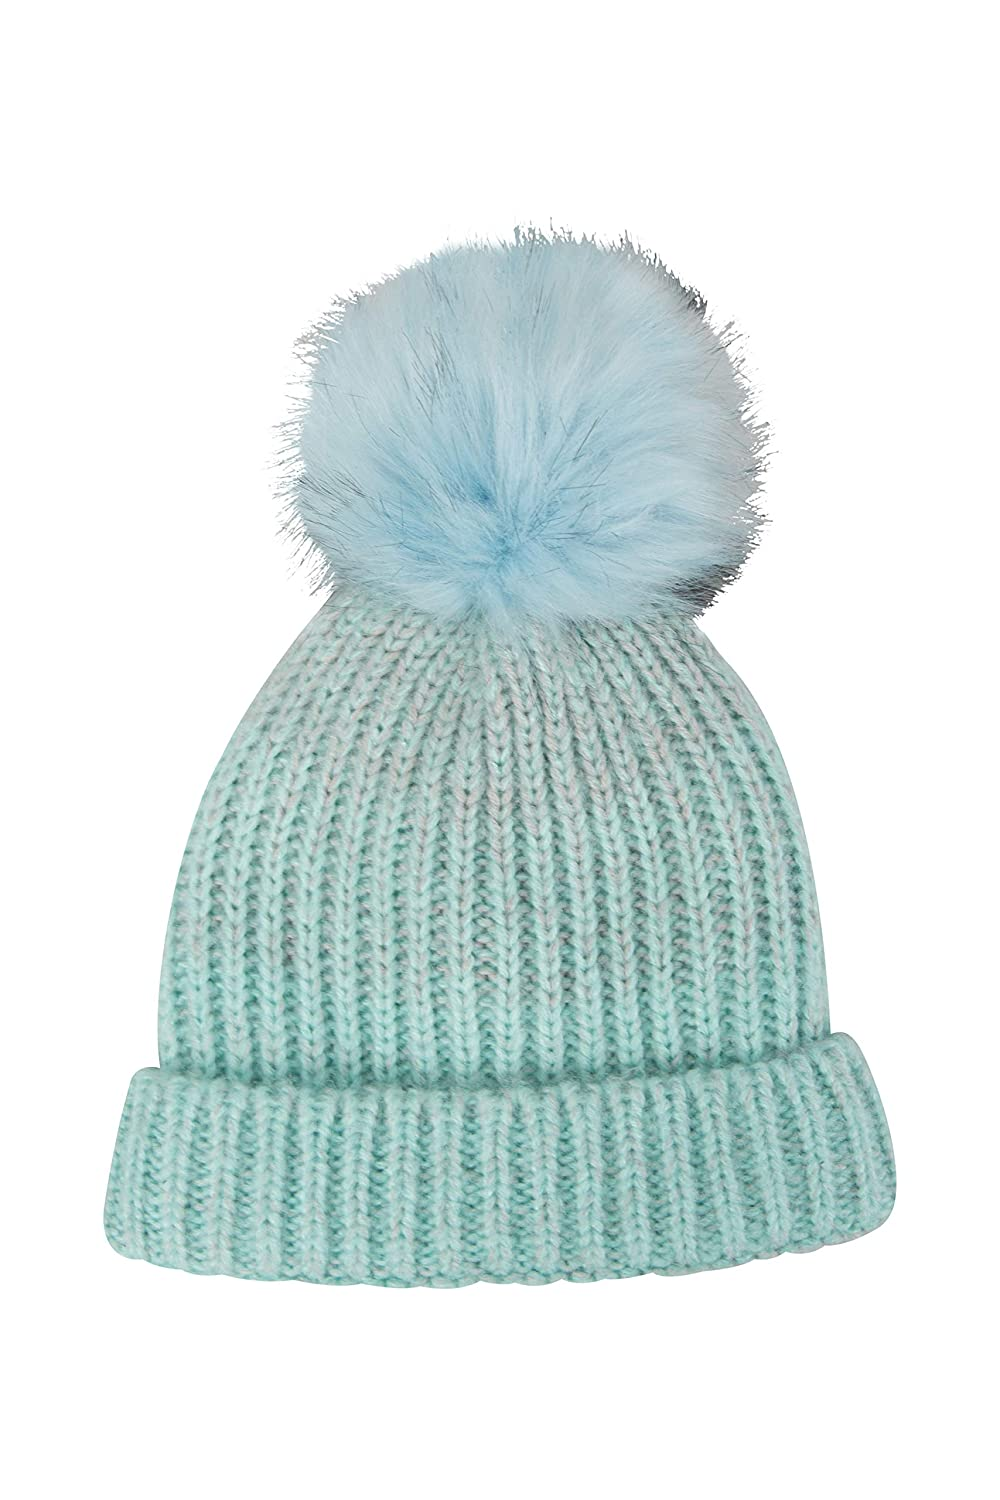 Pom Pom Hat Camping Warm Cap Travelling Stylish Mountain Warehouse Fluff Bomb Kids Beanie Lightweight Headwear Childrens Winter Accessory for Outdoor